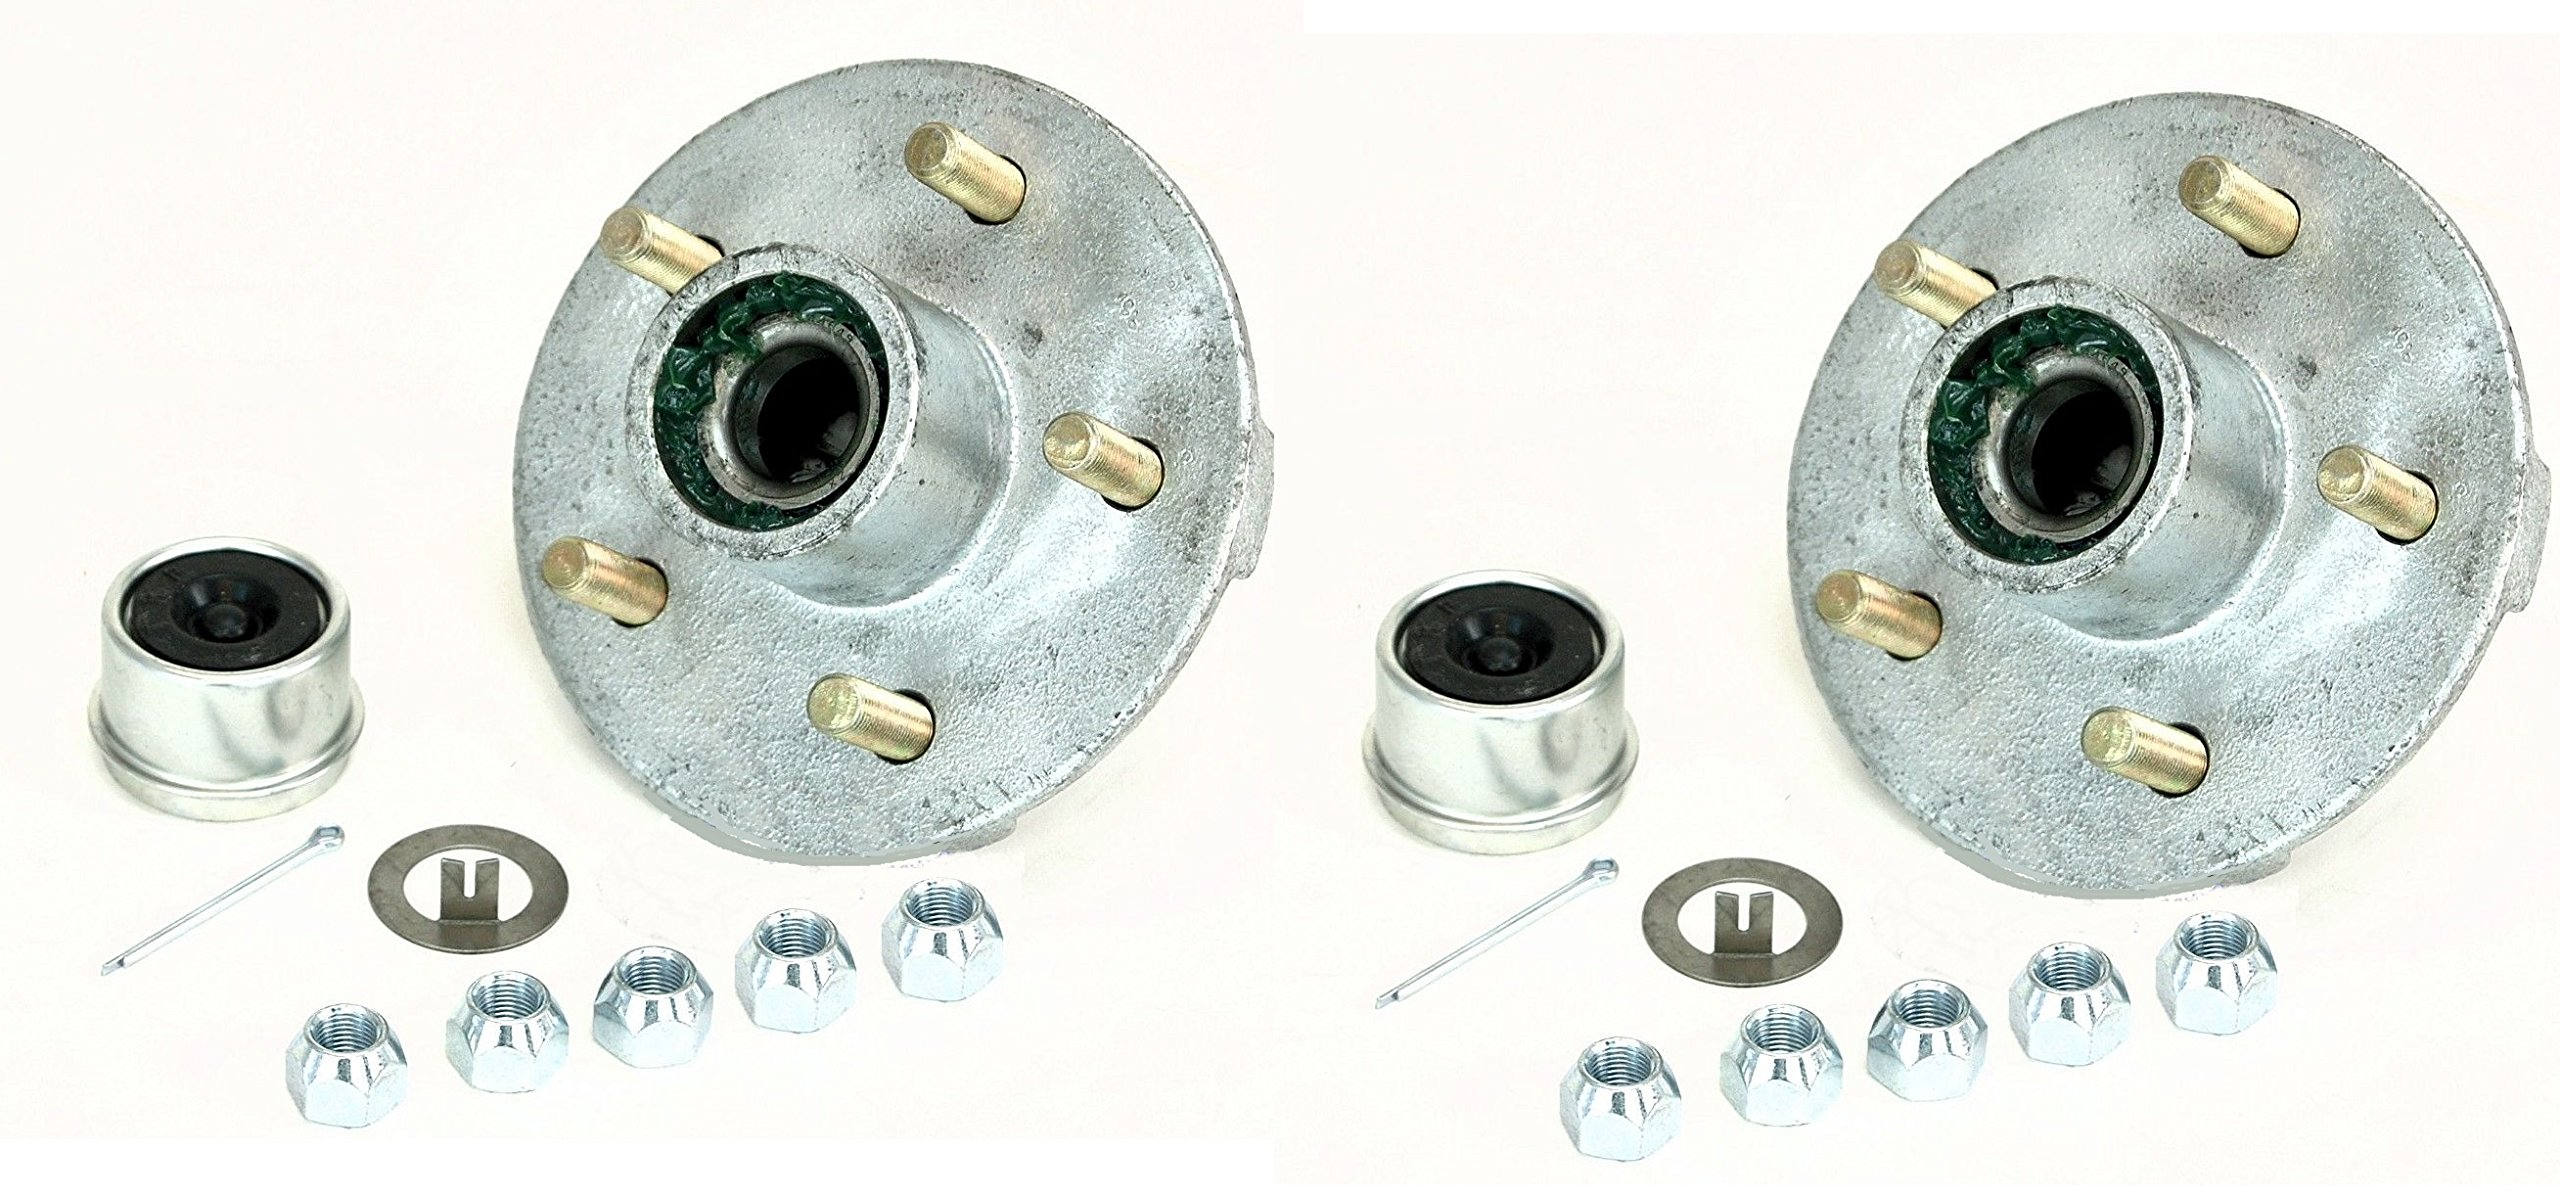 2-Pack Trailer Wheel Hub Pre-Greased Complete Galvanized 5 Lug (4.5) 84 3500lb by Eco Trailer Tire and Wheel